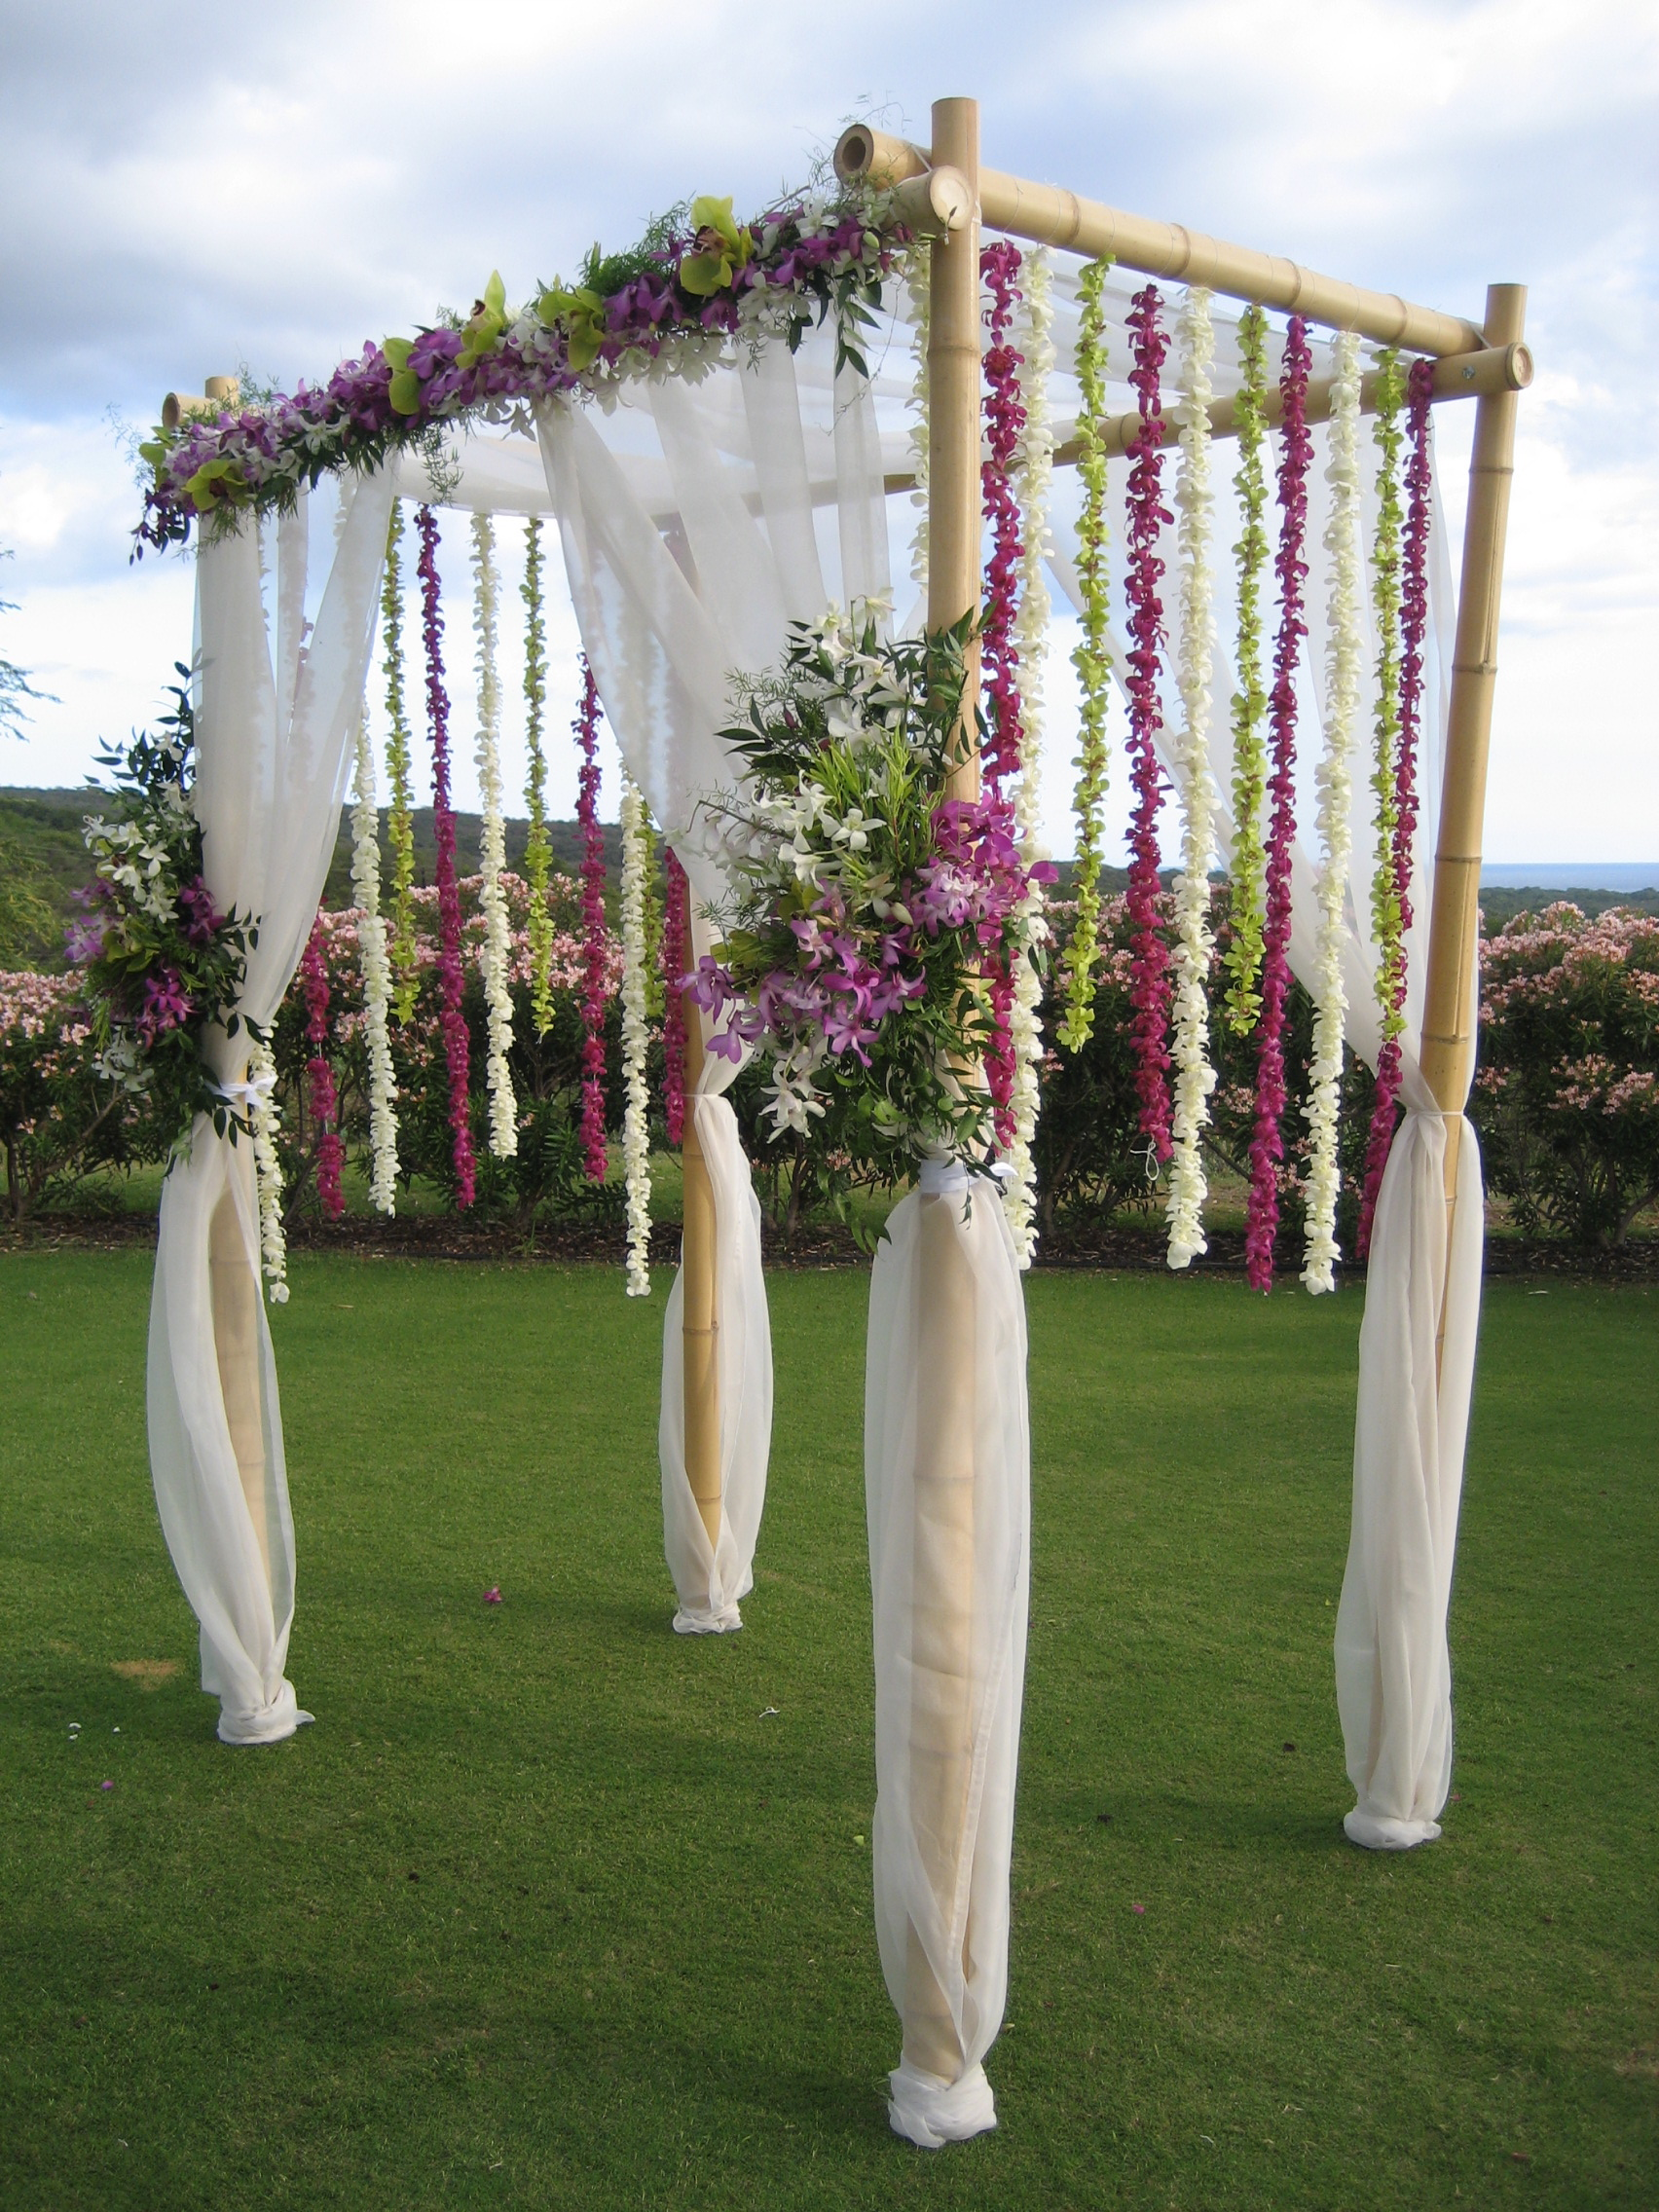 Outdoor wedding decoration ideas party ideas for Backyard engagement party decoration ideas